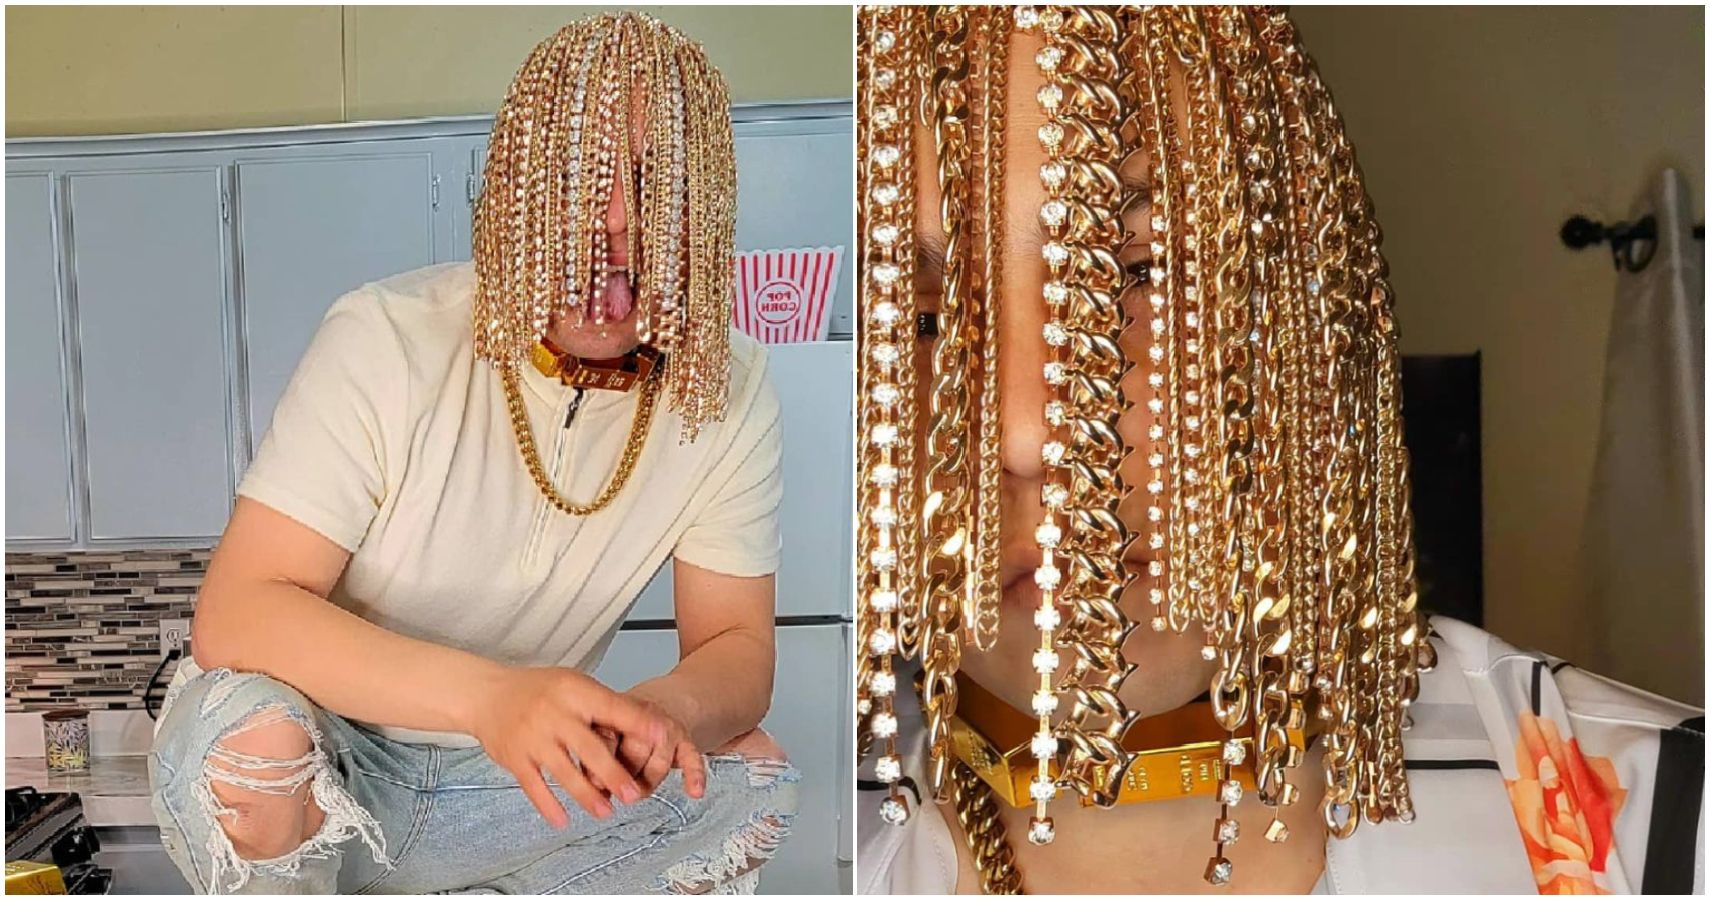 Gold Rush: Rapper Dan Sur Replaces Hair With Surgically Implanted Gold Chains